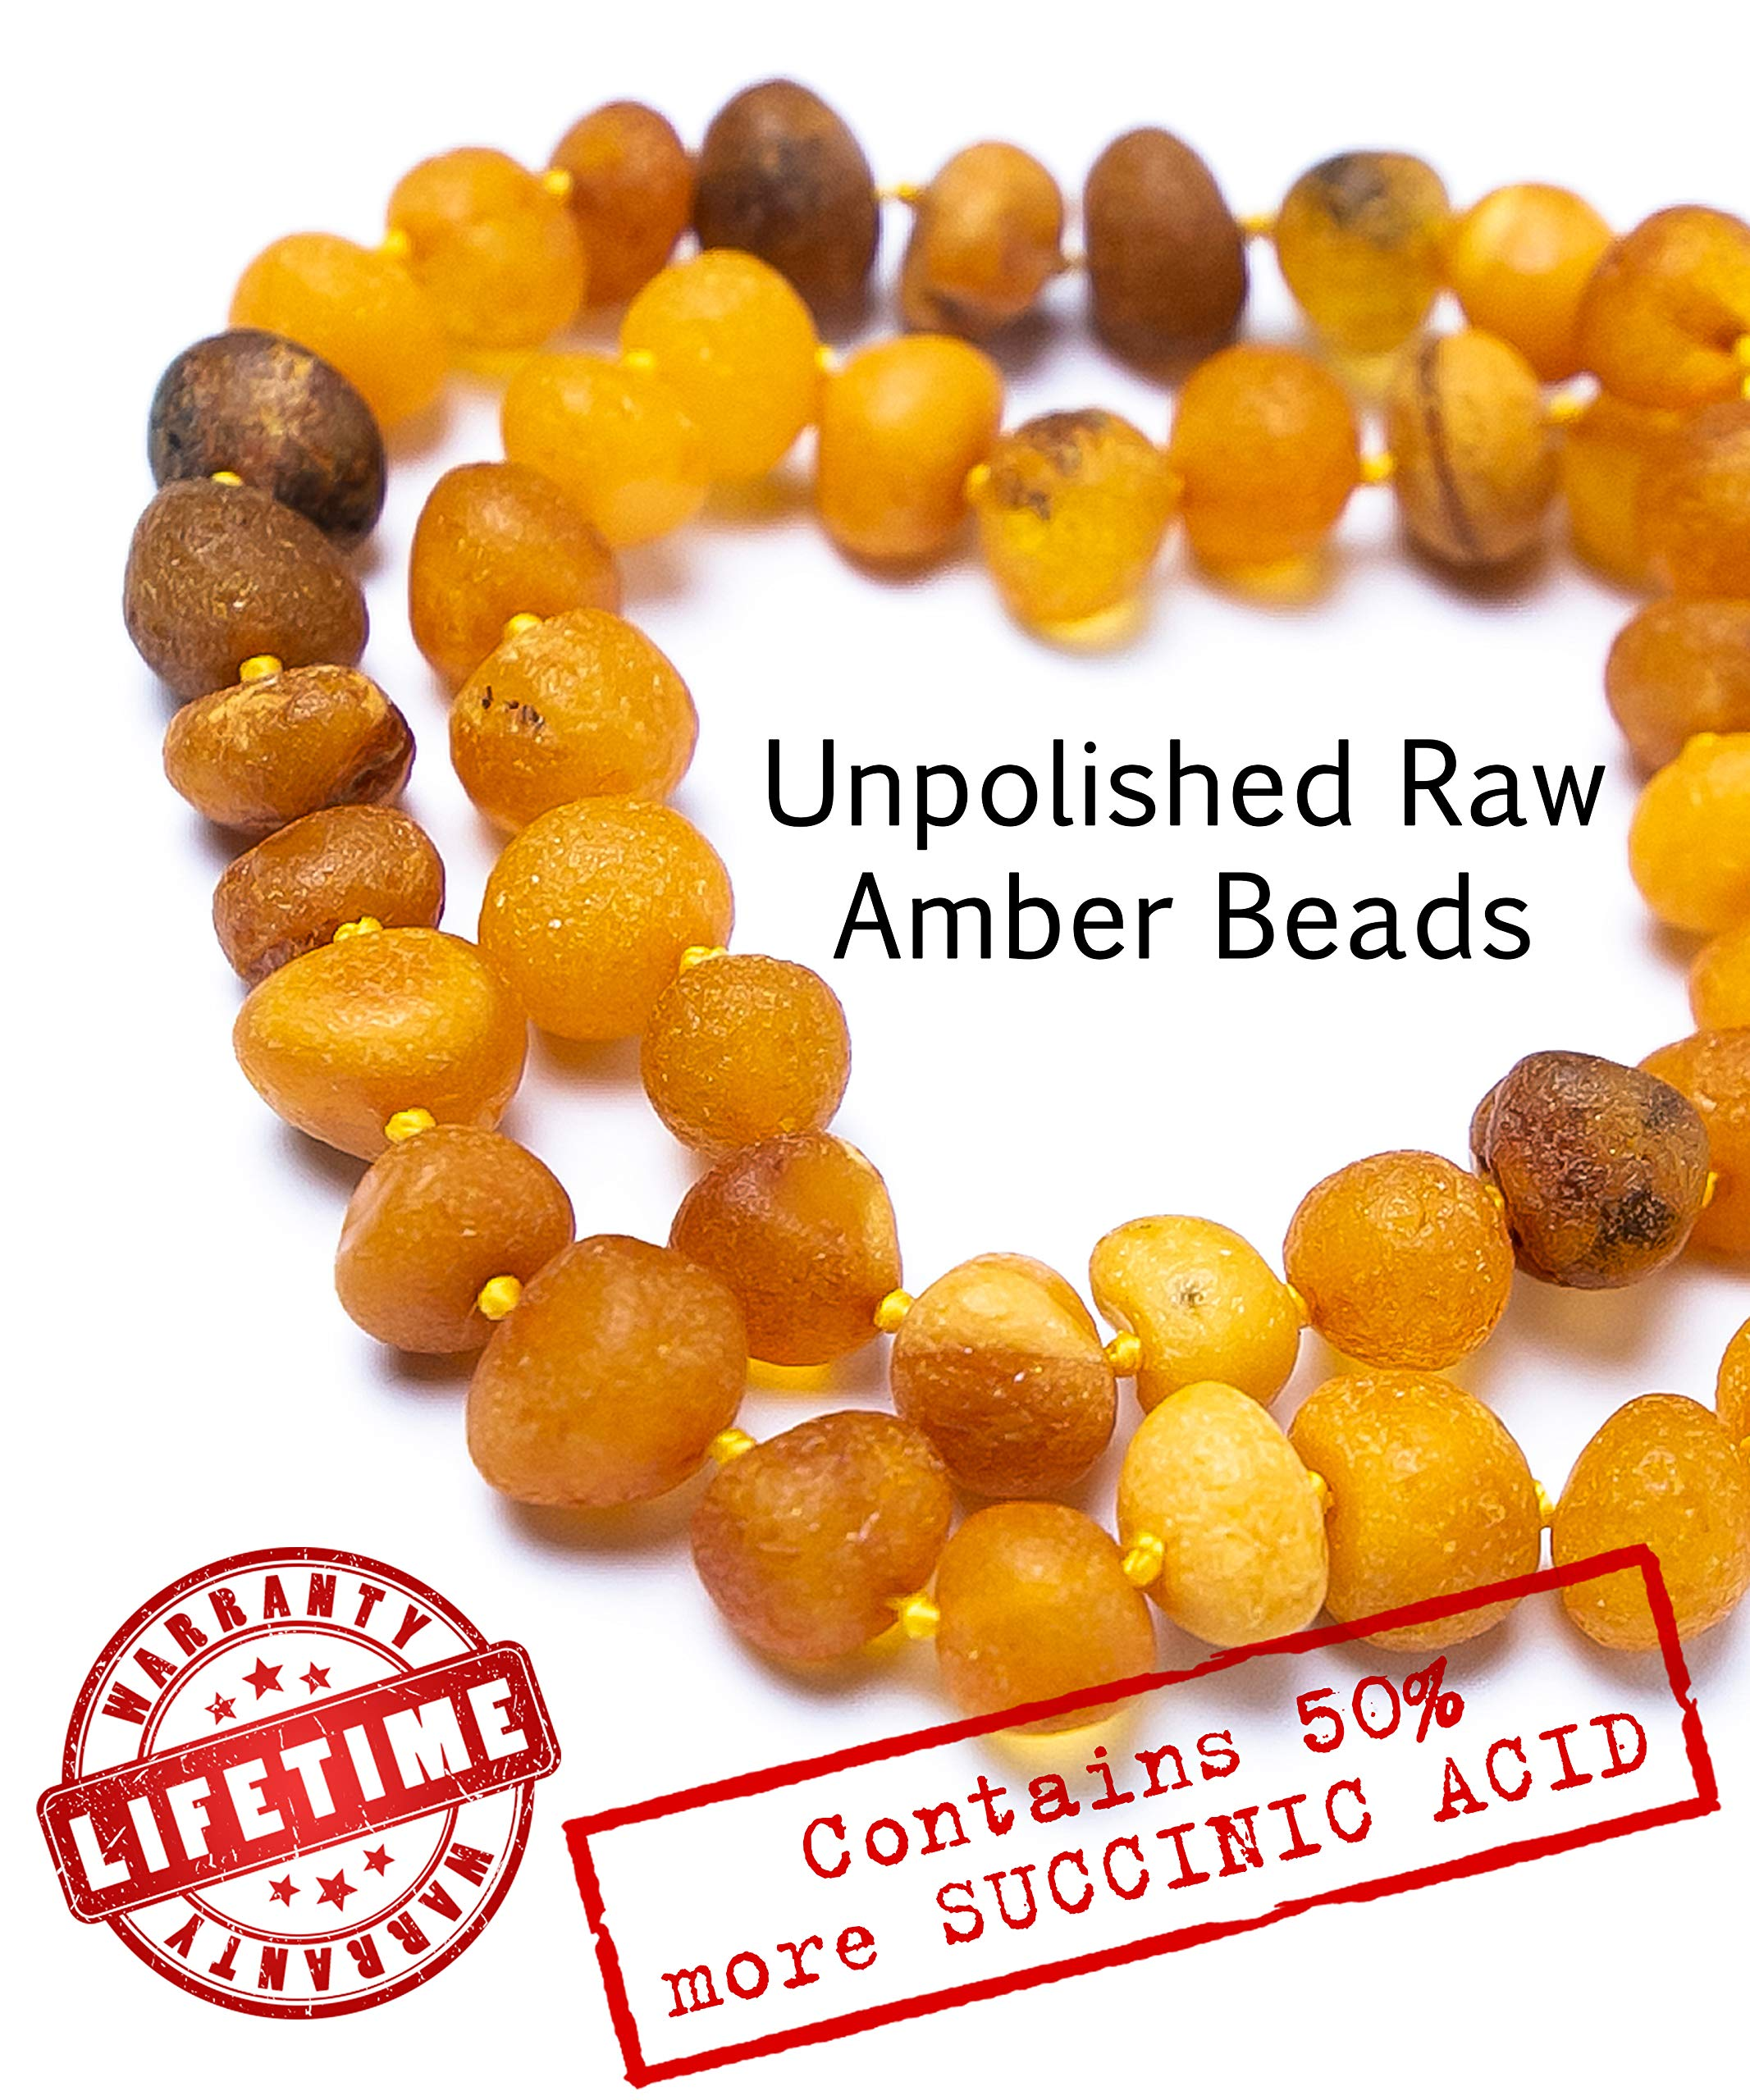 RAW Baltic Amber Teething Necklace for Babies - UNPOLISHED Organic Raw Amber Beads - Baby Teething Necklace For Boys And Girls - Anti Inflammatory Drooling And Baby Teething Relief - GIA Certified by LATITATA CRAFT